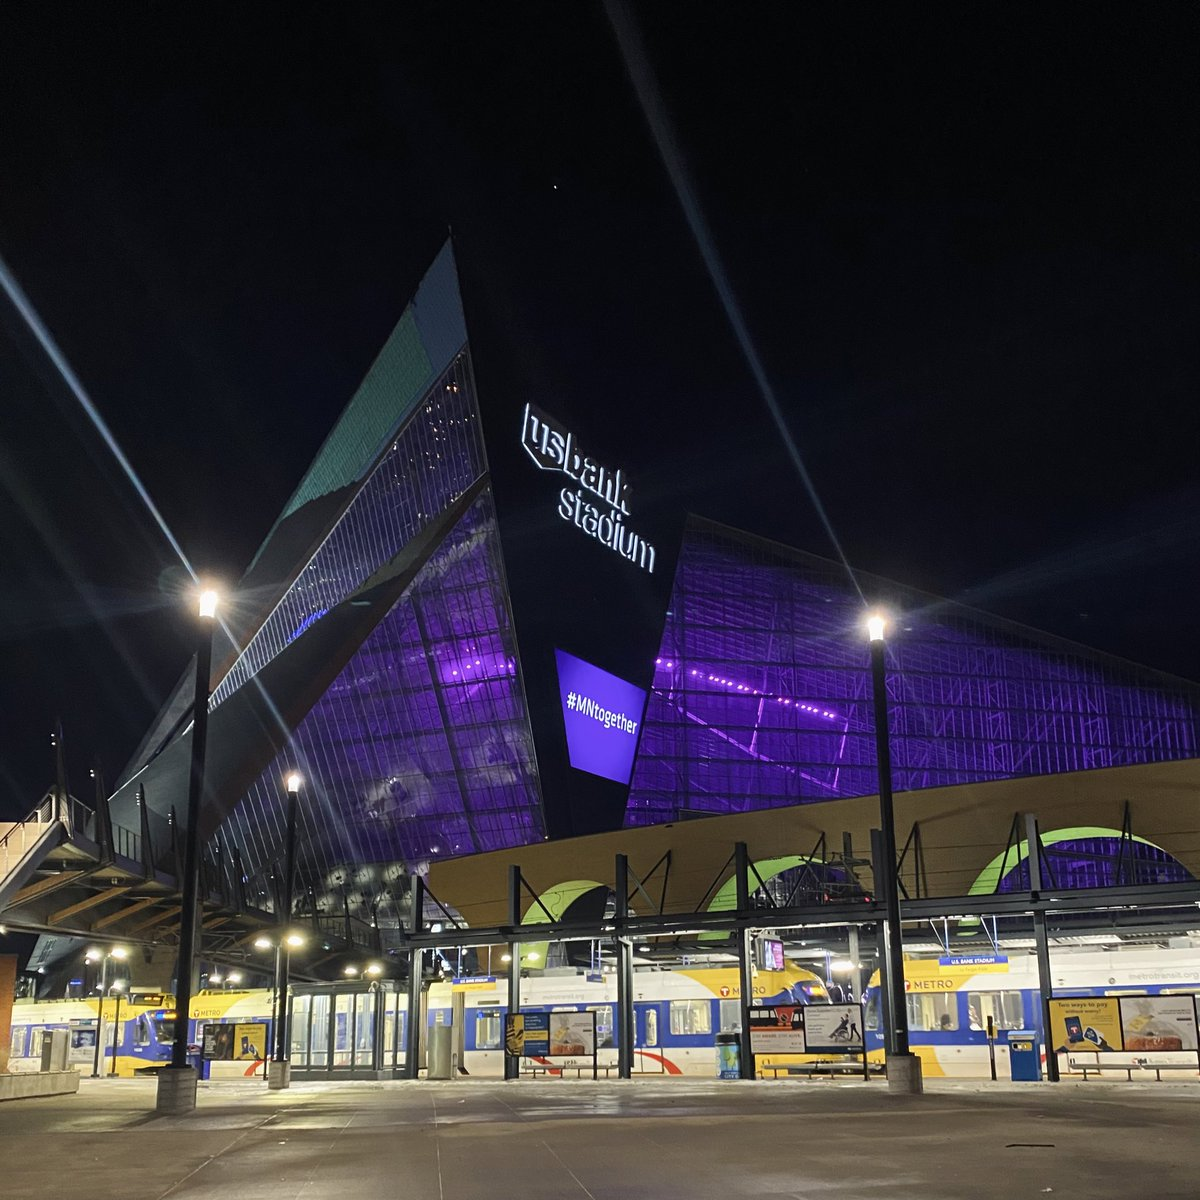 We light purple tonight to remember those who have lost their lives to COVID-19 and to thank the frontline workers fighting the pandemic. 💜 #MNtogether